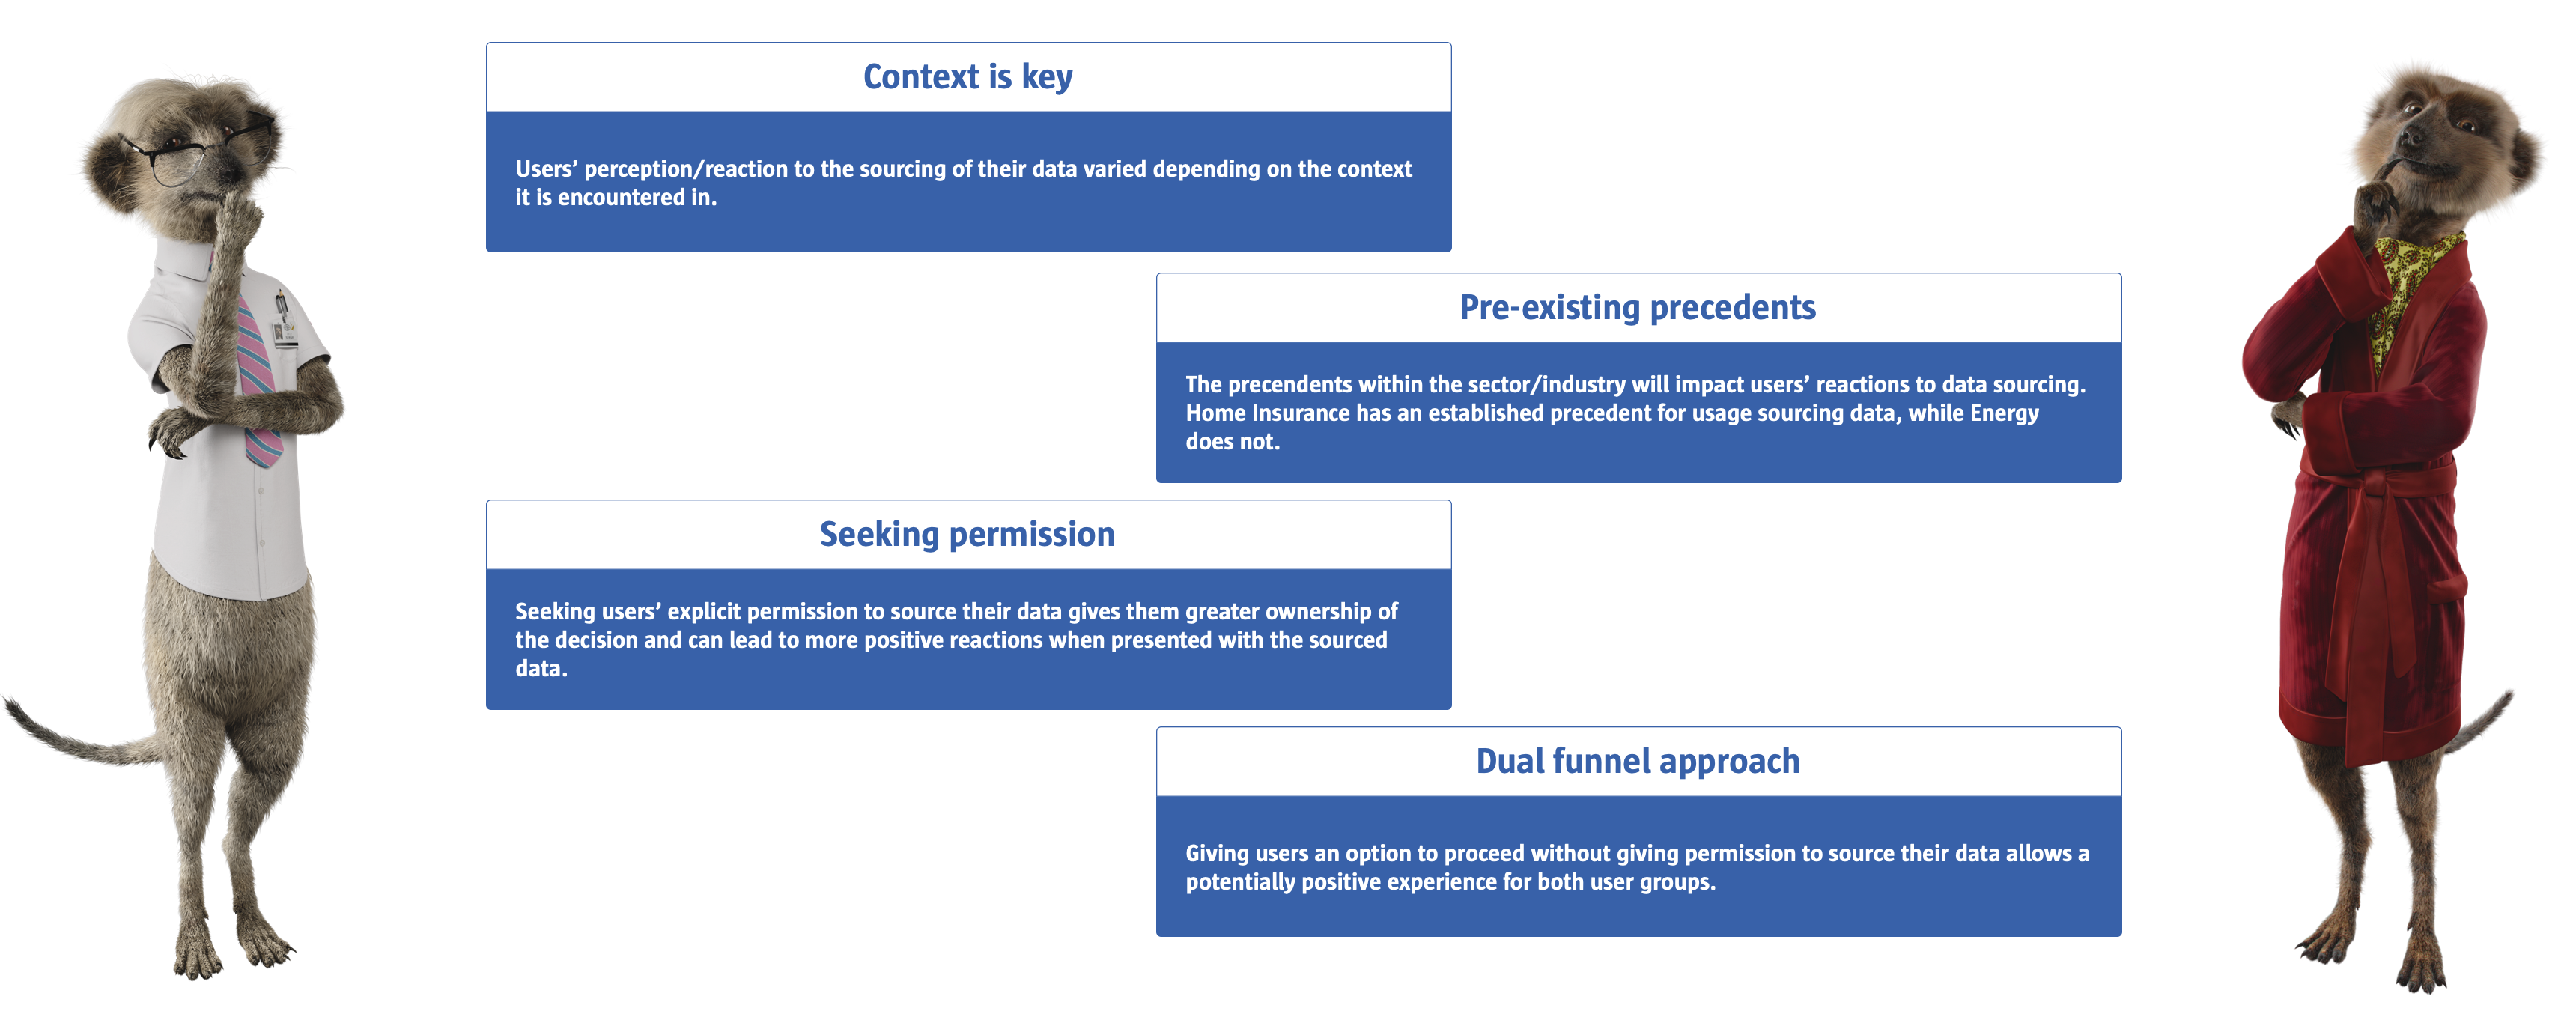 The conclusions from the overall project: Context is key, Pre-existing precedents matter, Seeking permission can reassure users and a Dual-Funnel approach allows non-permission users to proceed